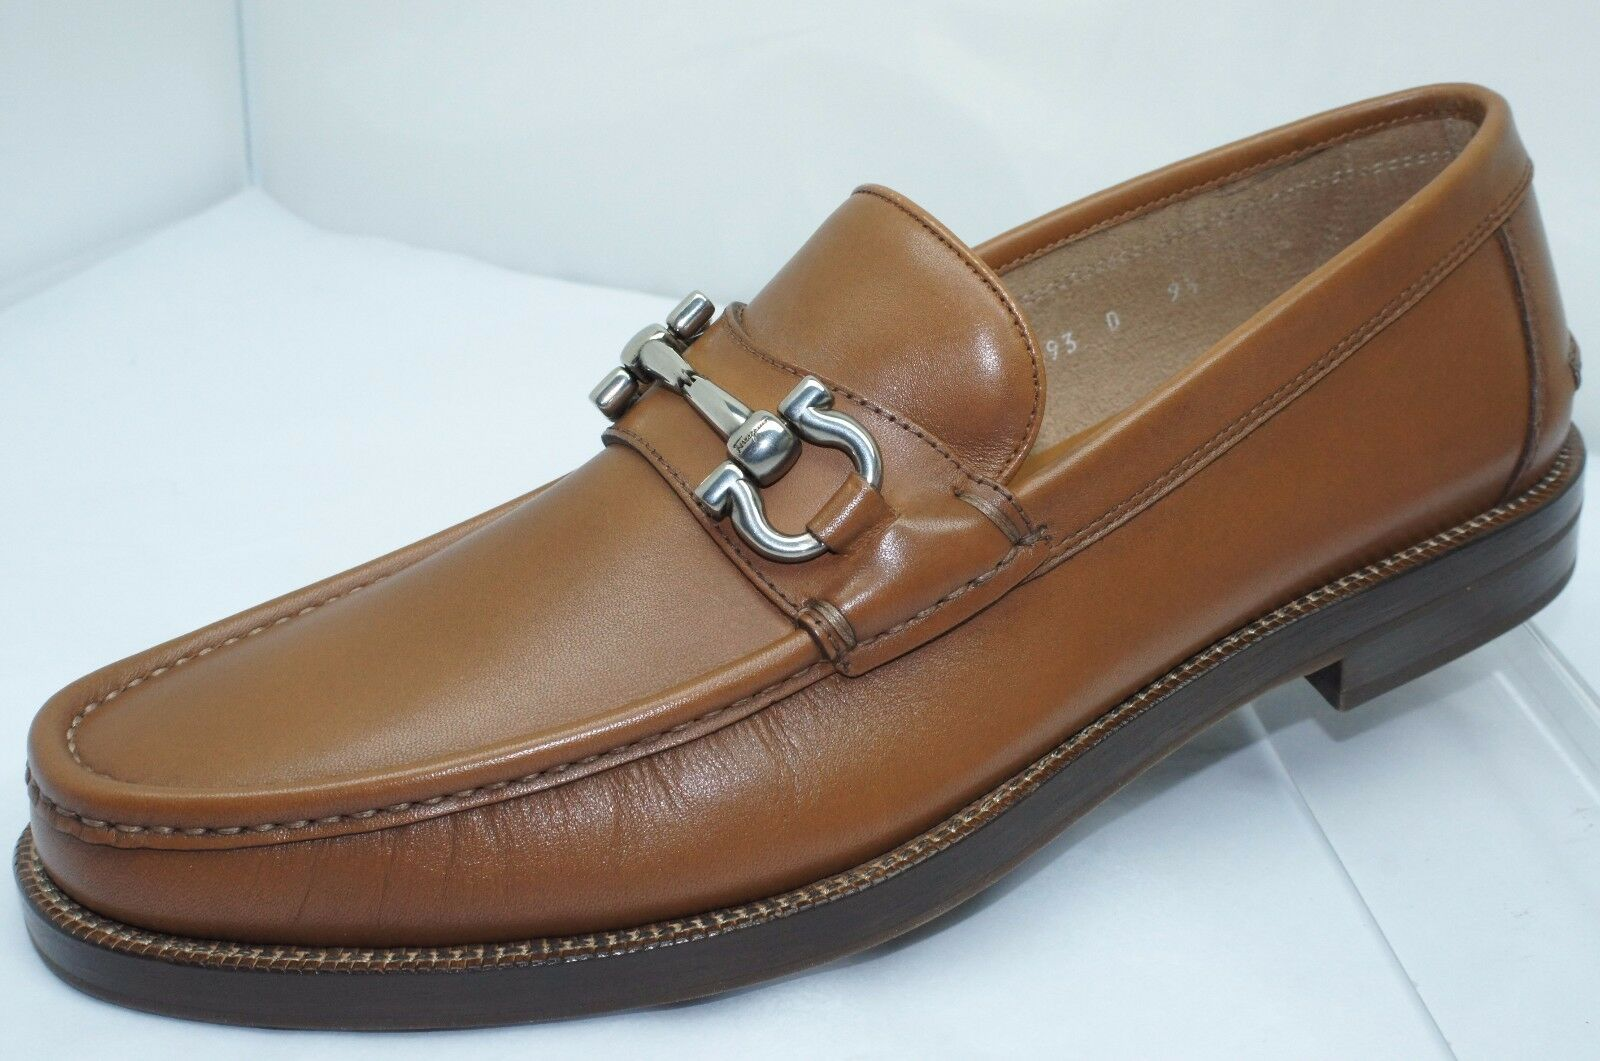 New Salvatore Ferragamo Loriano Men's shoes Brown Size 7.5 Loafers Drivers Sale